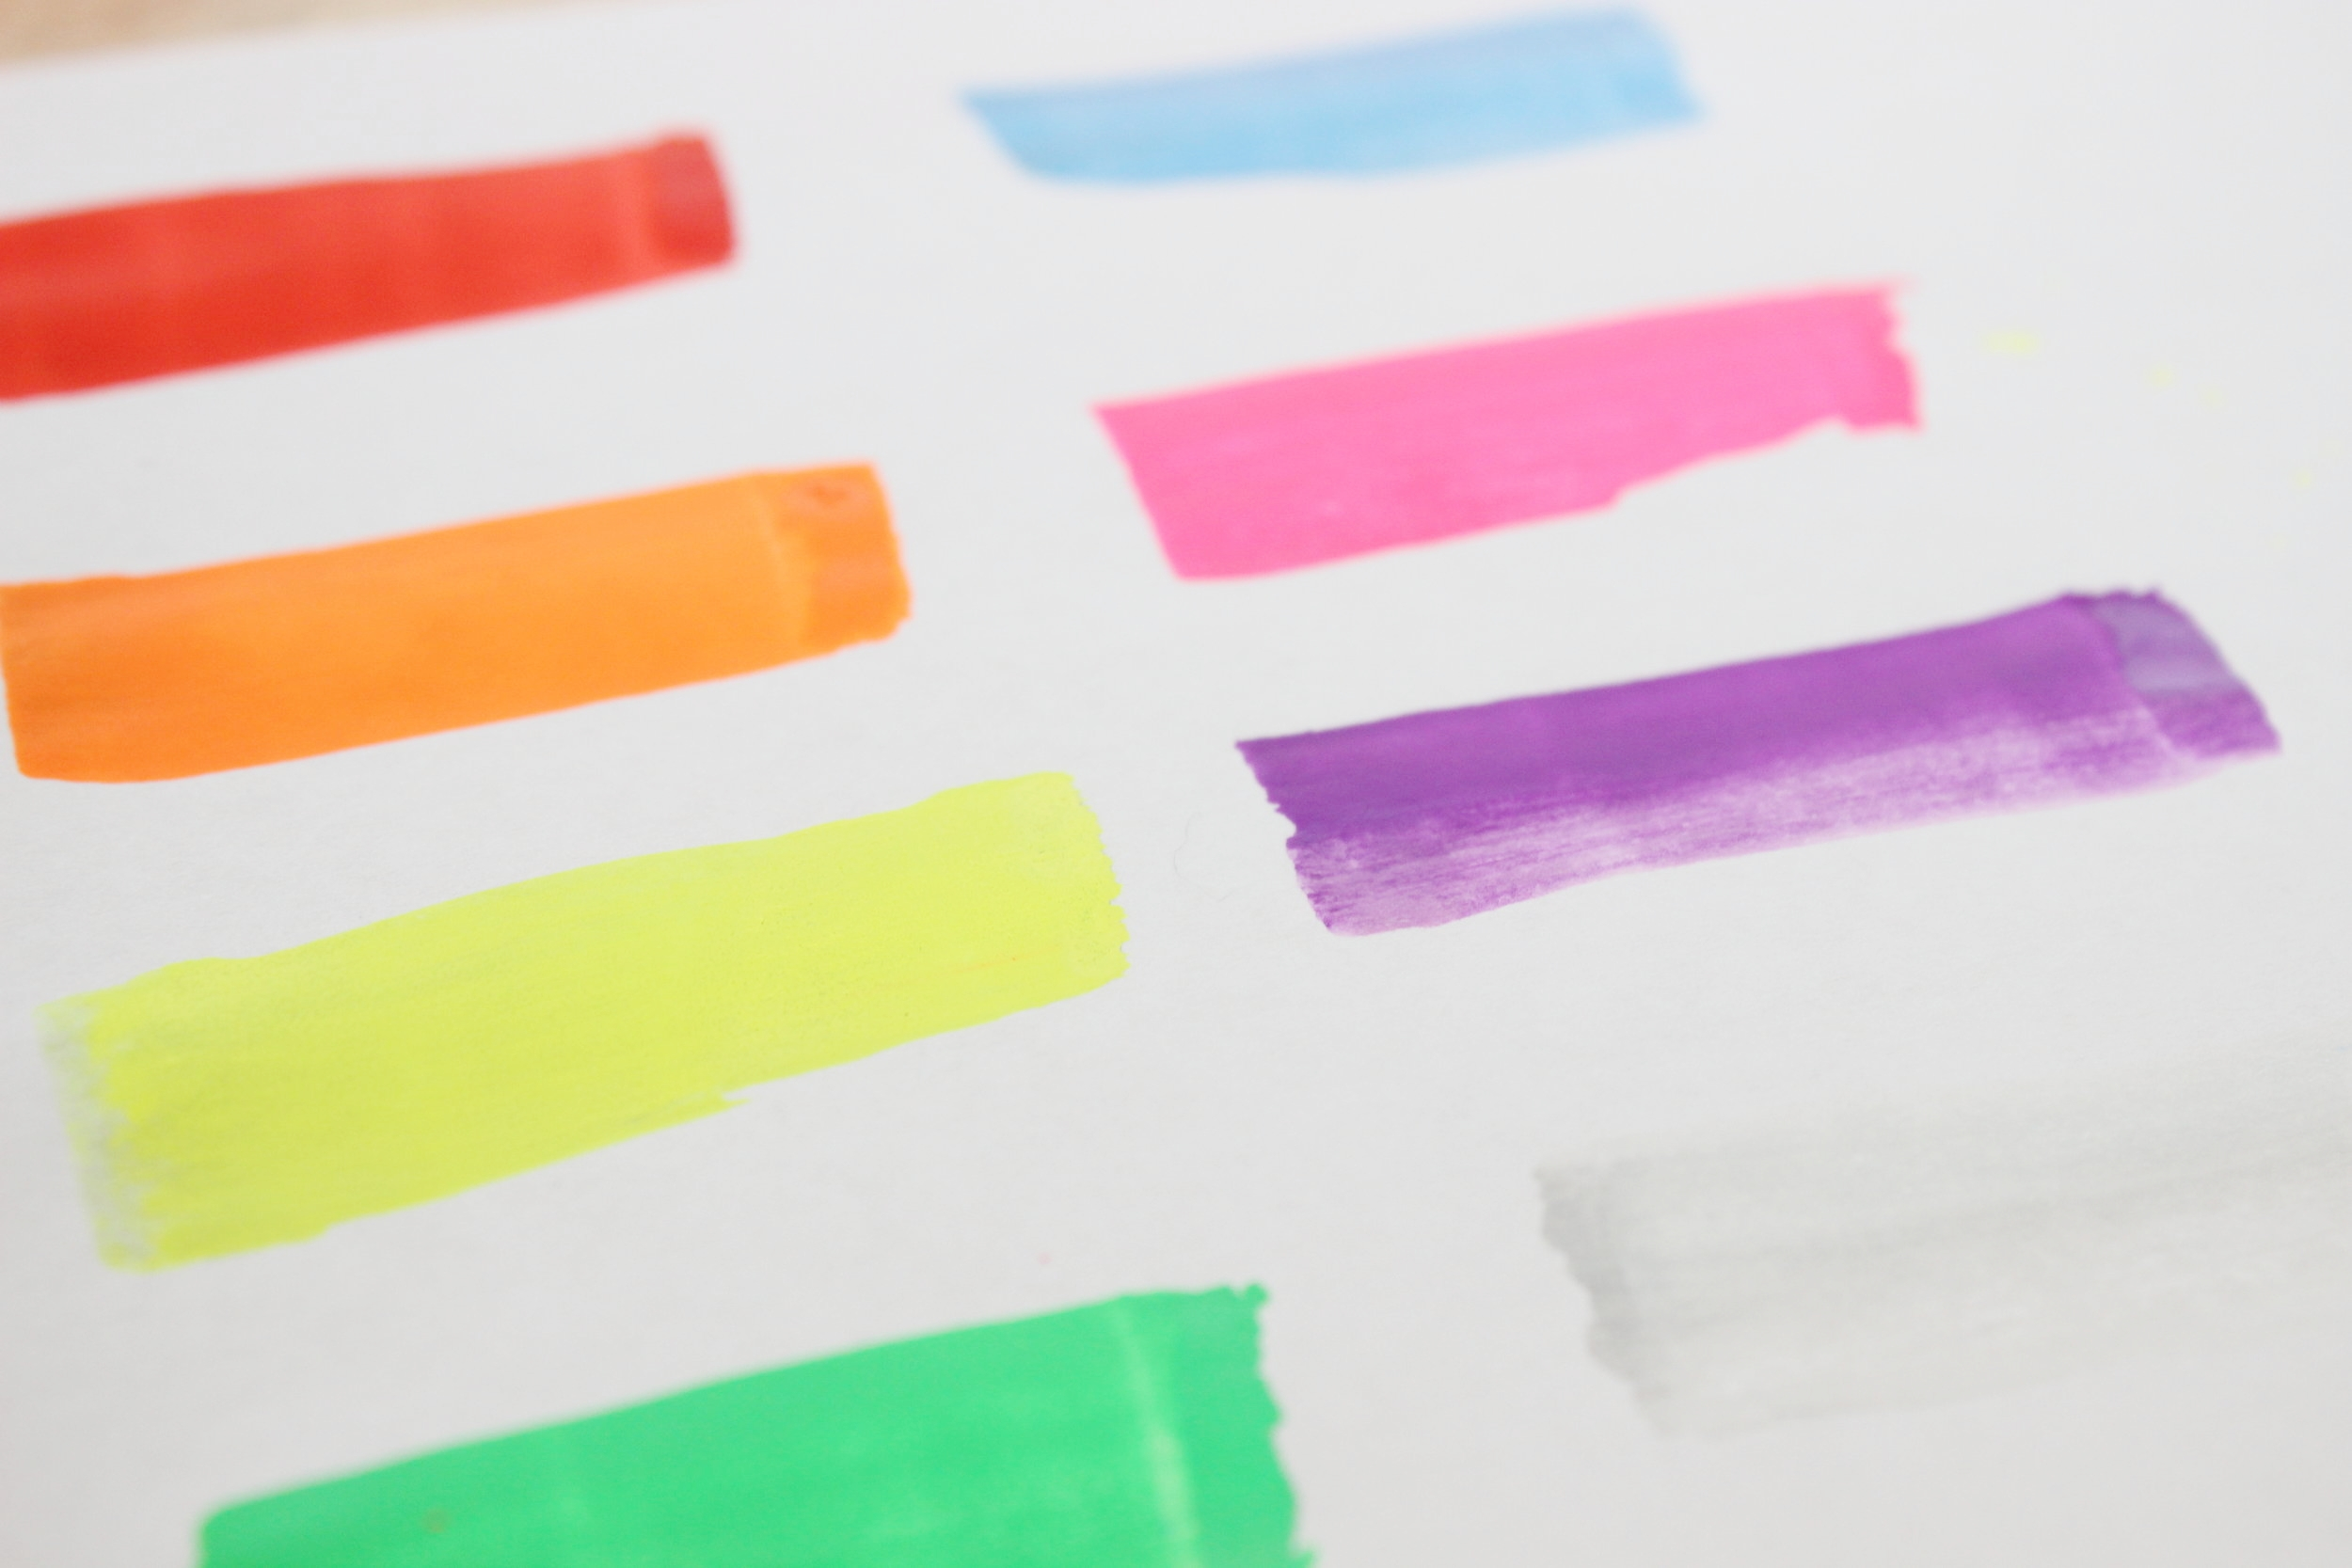 These are the 8 colors you get with The Chalkola Platinum Series with the 15MM jumbo 3-in-1 tip.